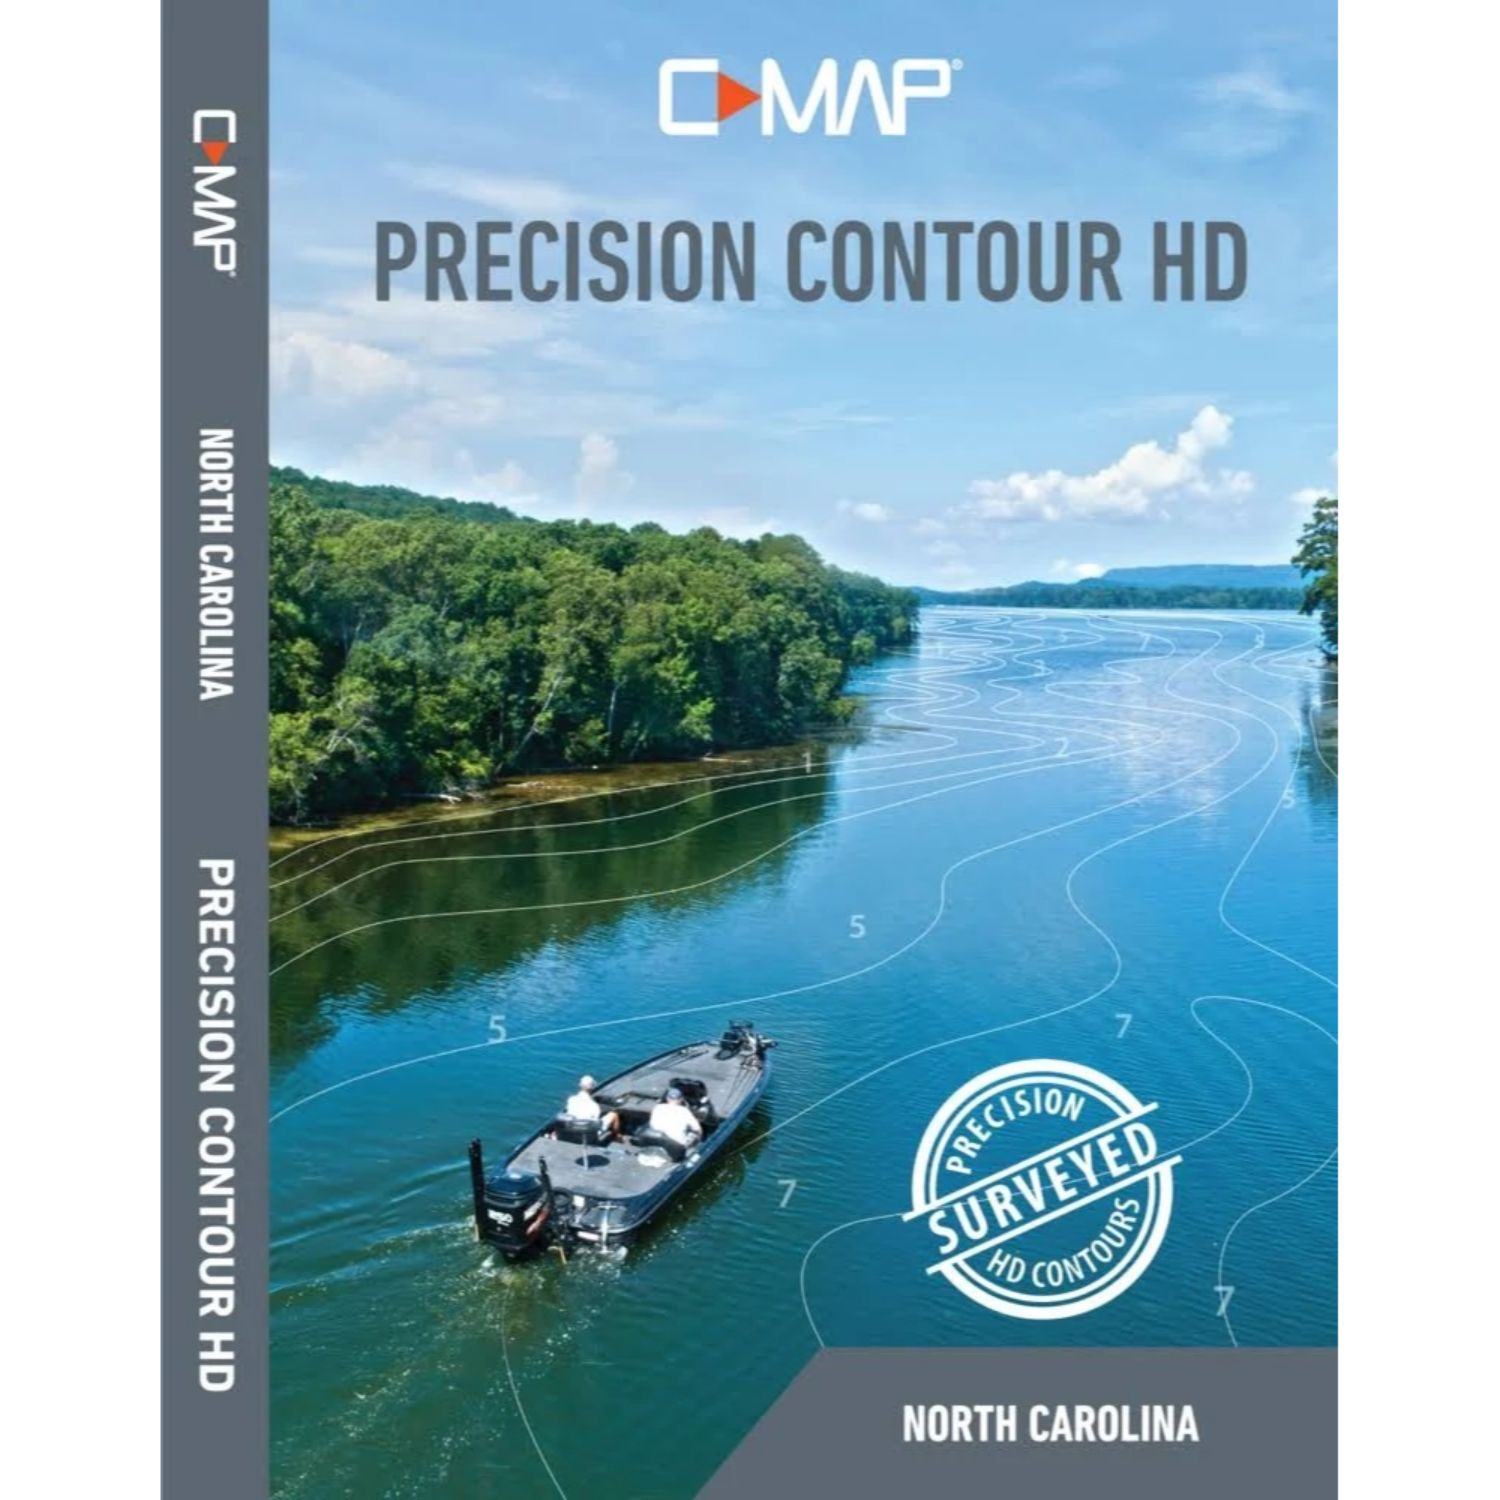 Lowrance C-MAP Precision Contour HD North Carolina